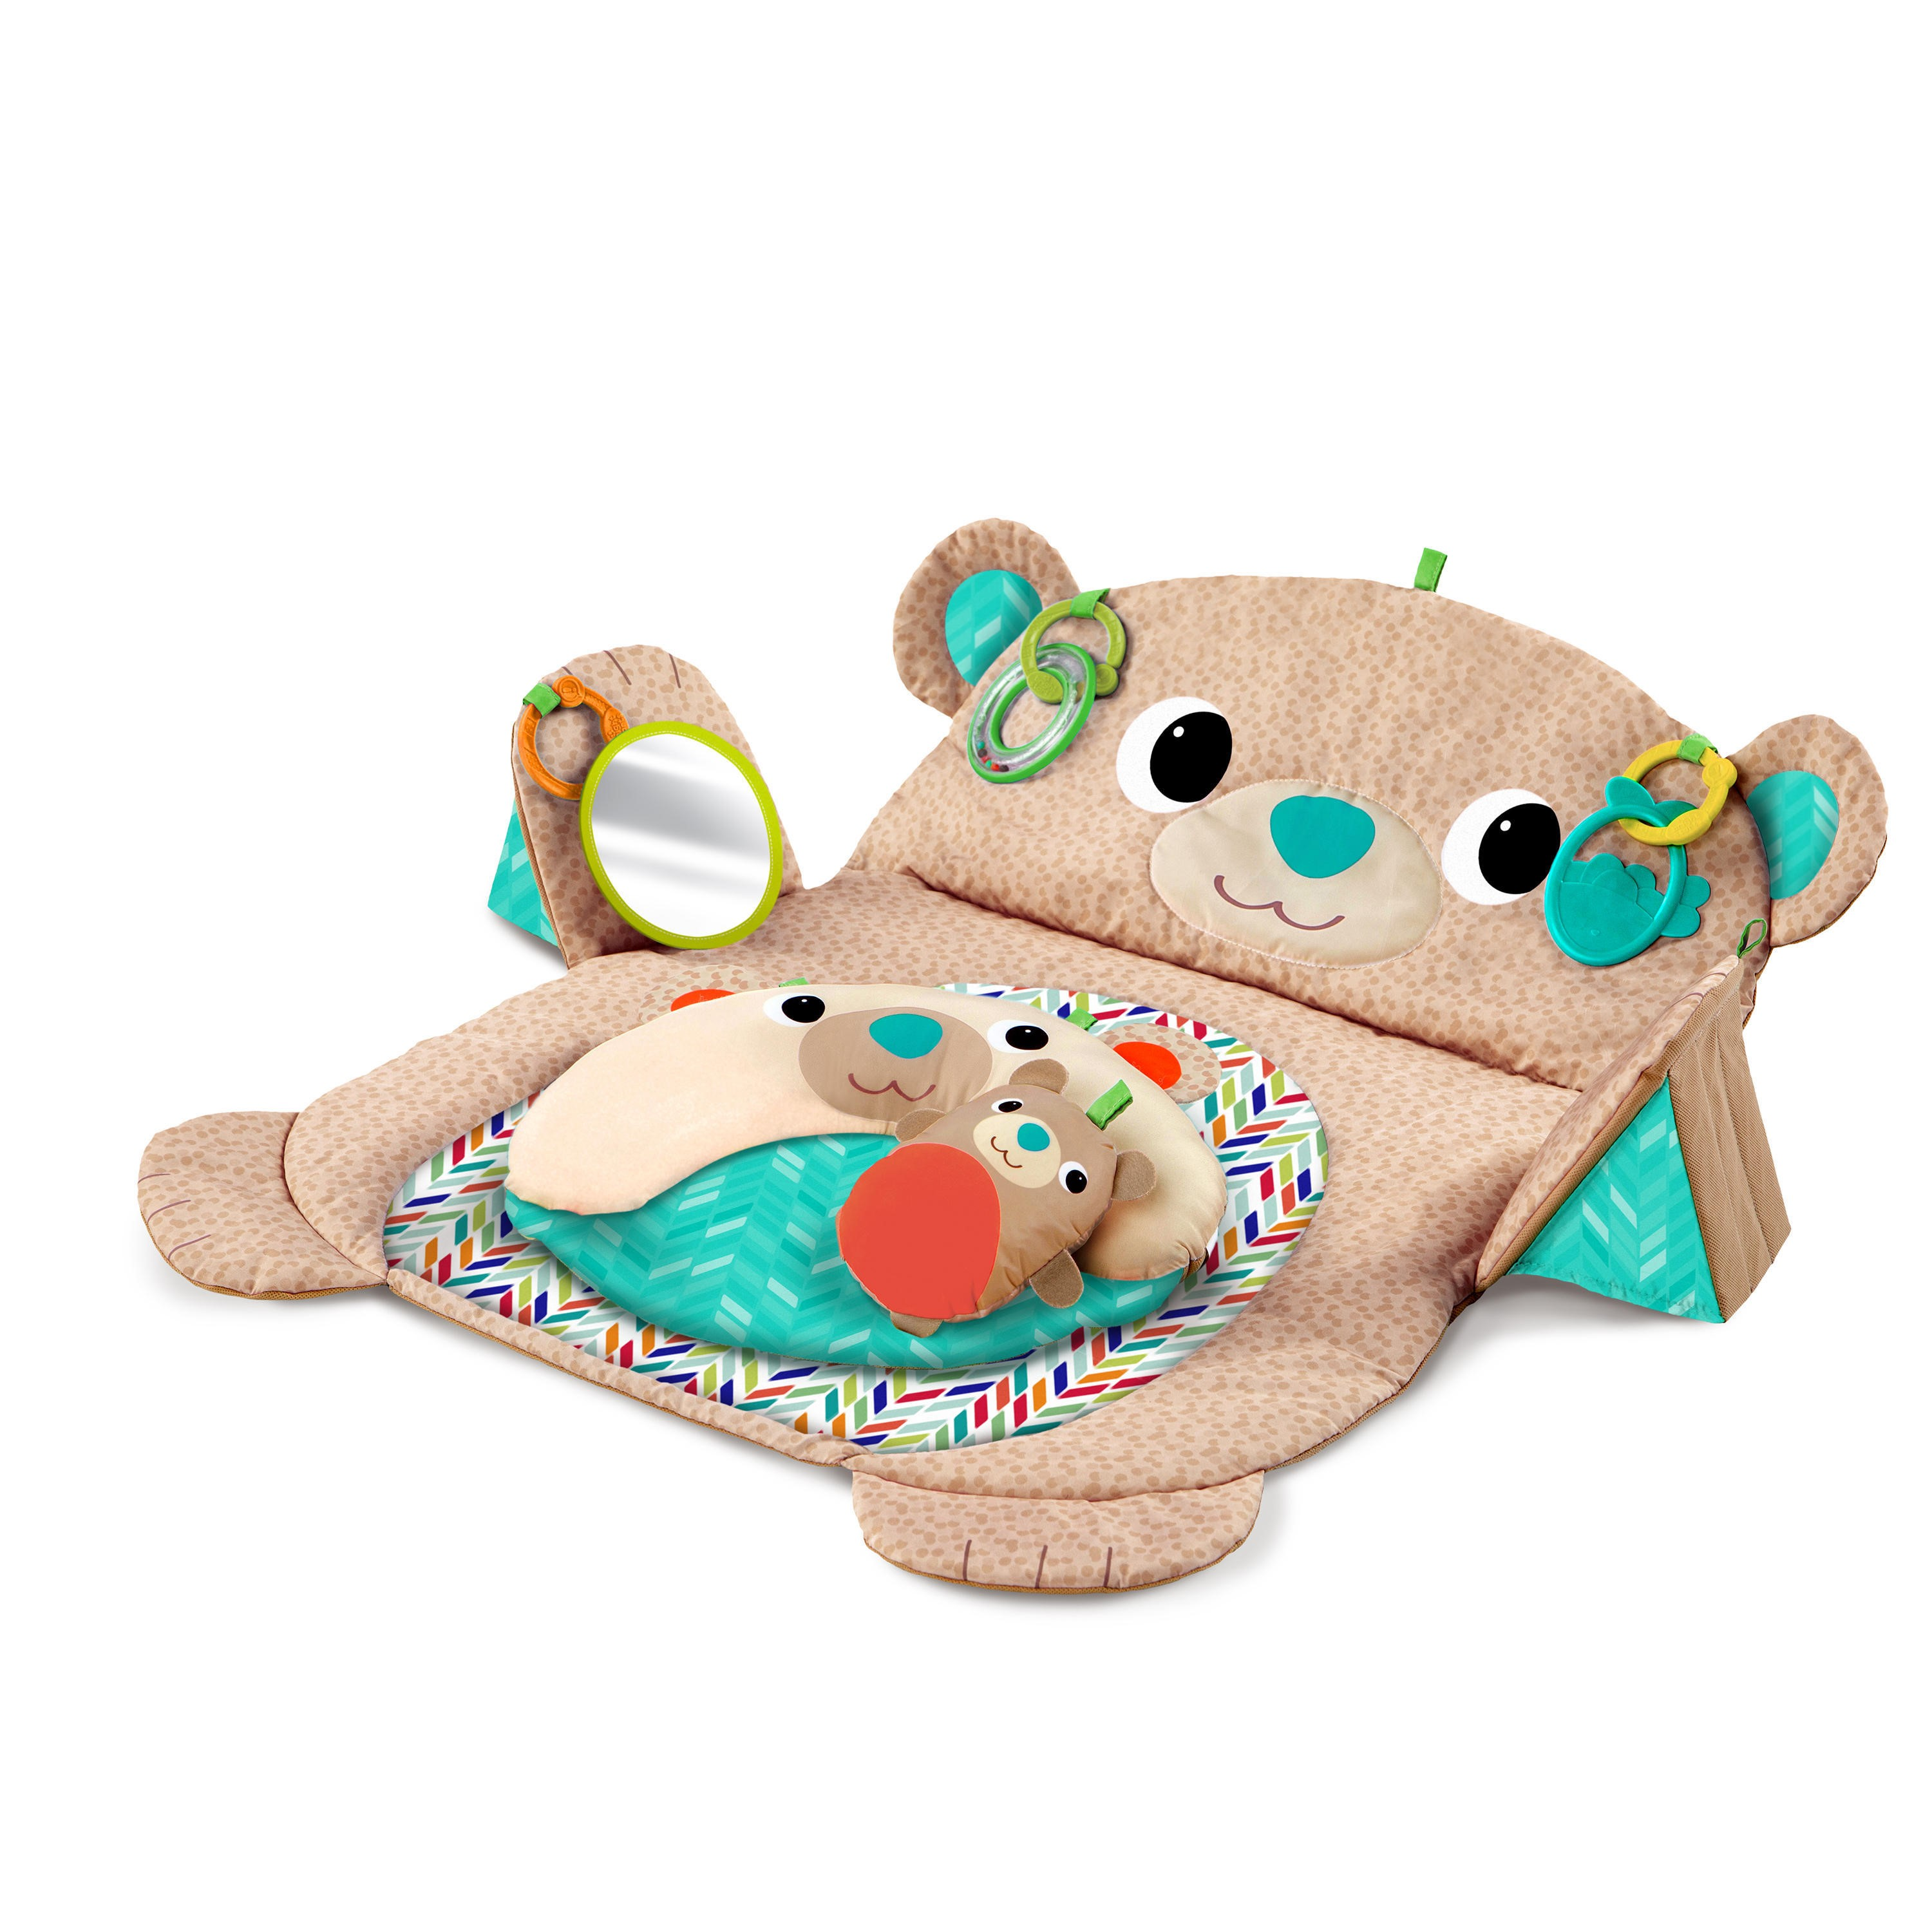 Bright Starts Tummy Time Prop & Play by Bright Starts